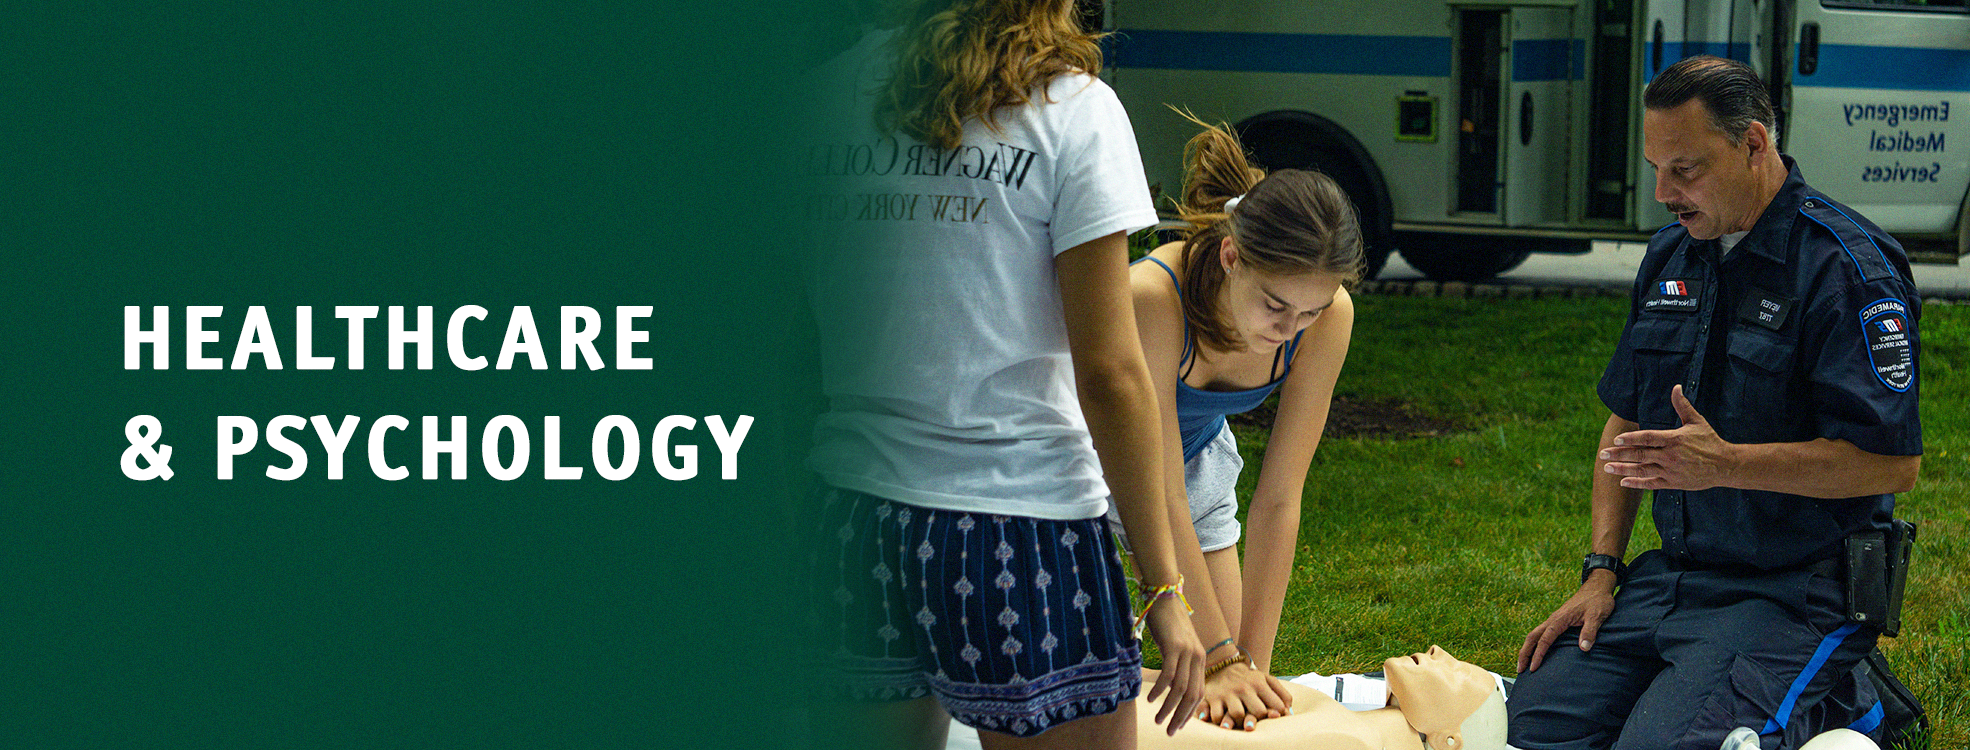 Summer Program - Pre-Med | Healthcare and Psychology | Summer Pre-College Program for High School Students at Wagner College